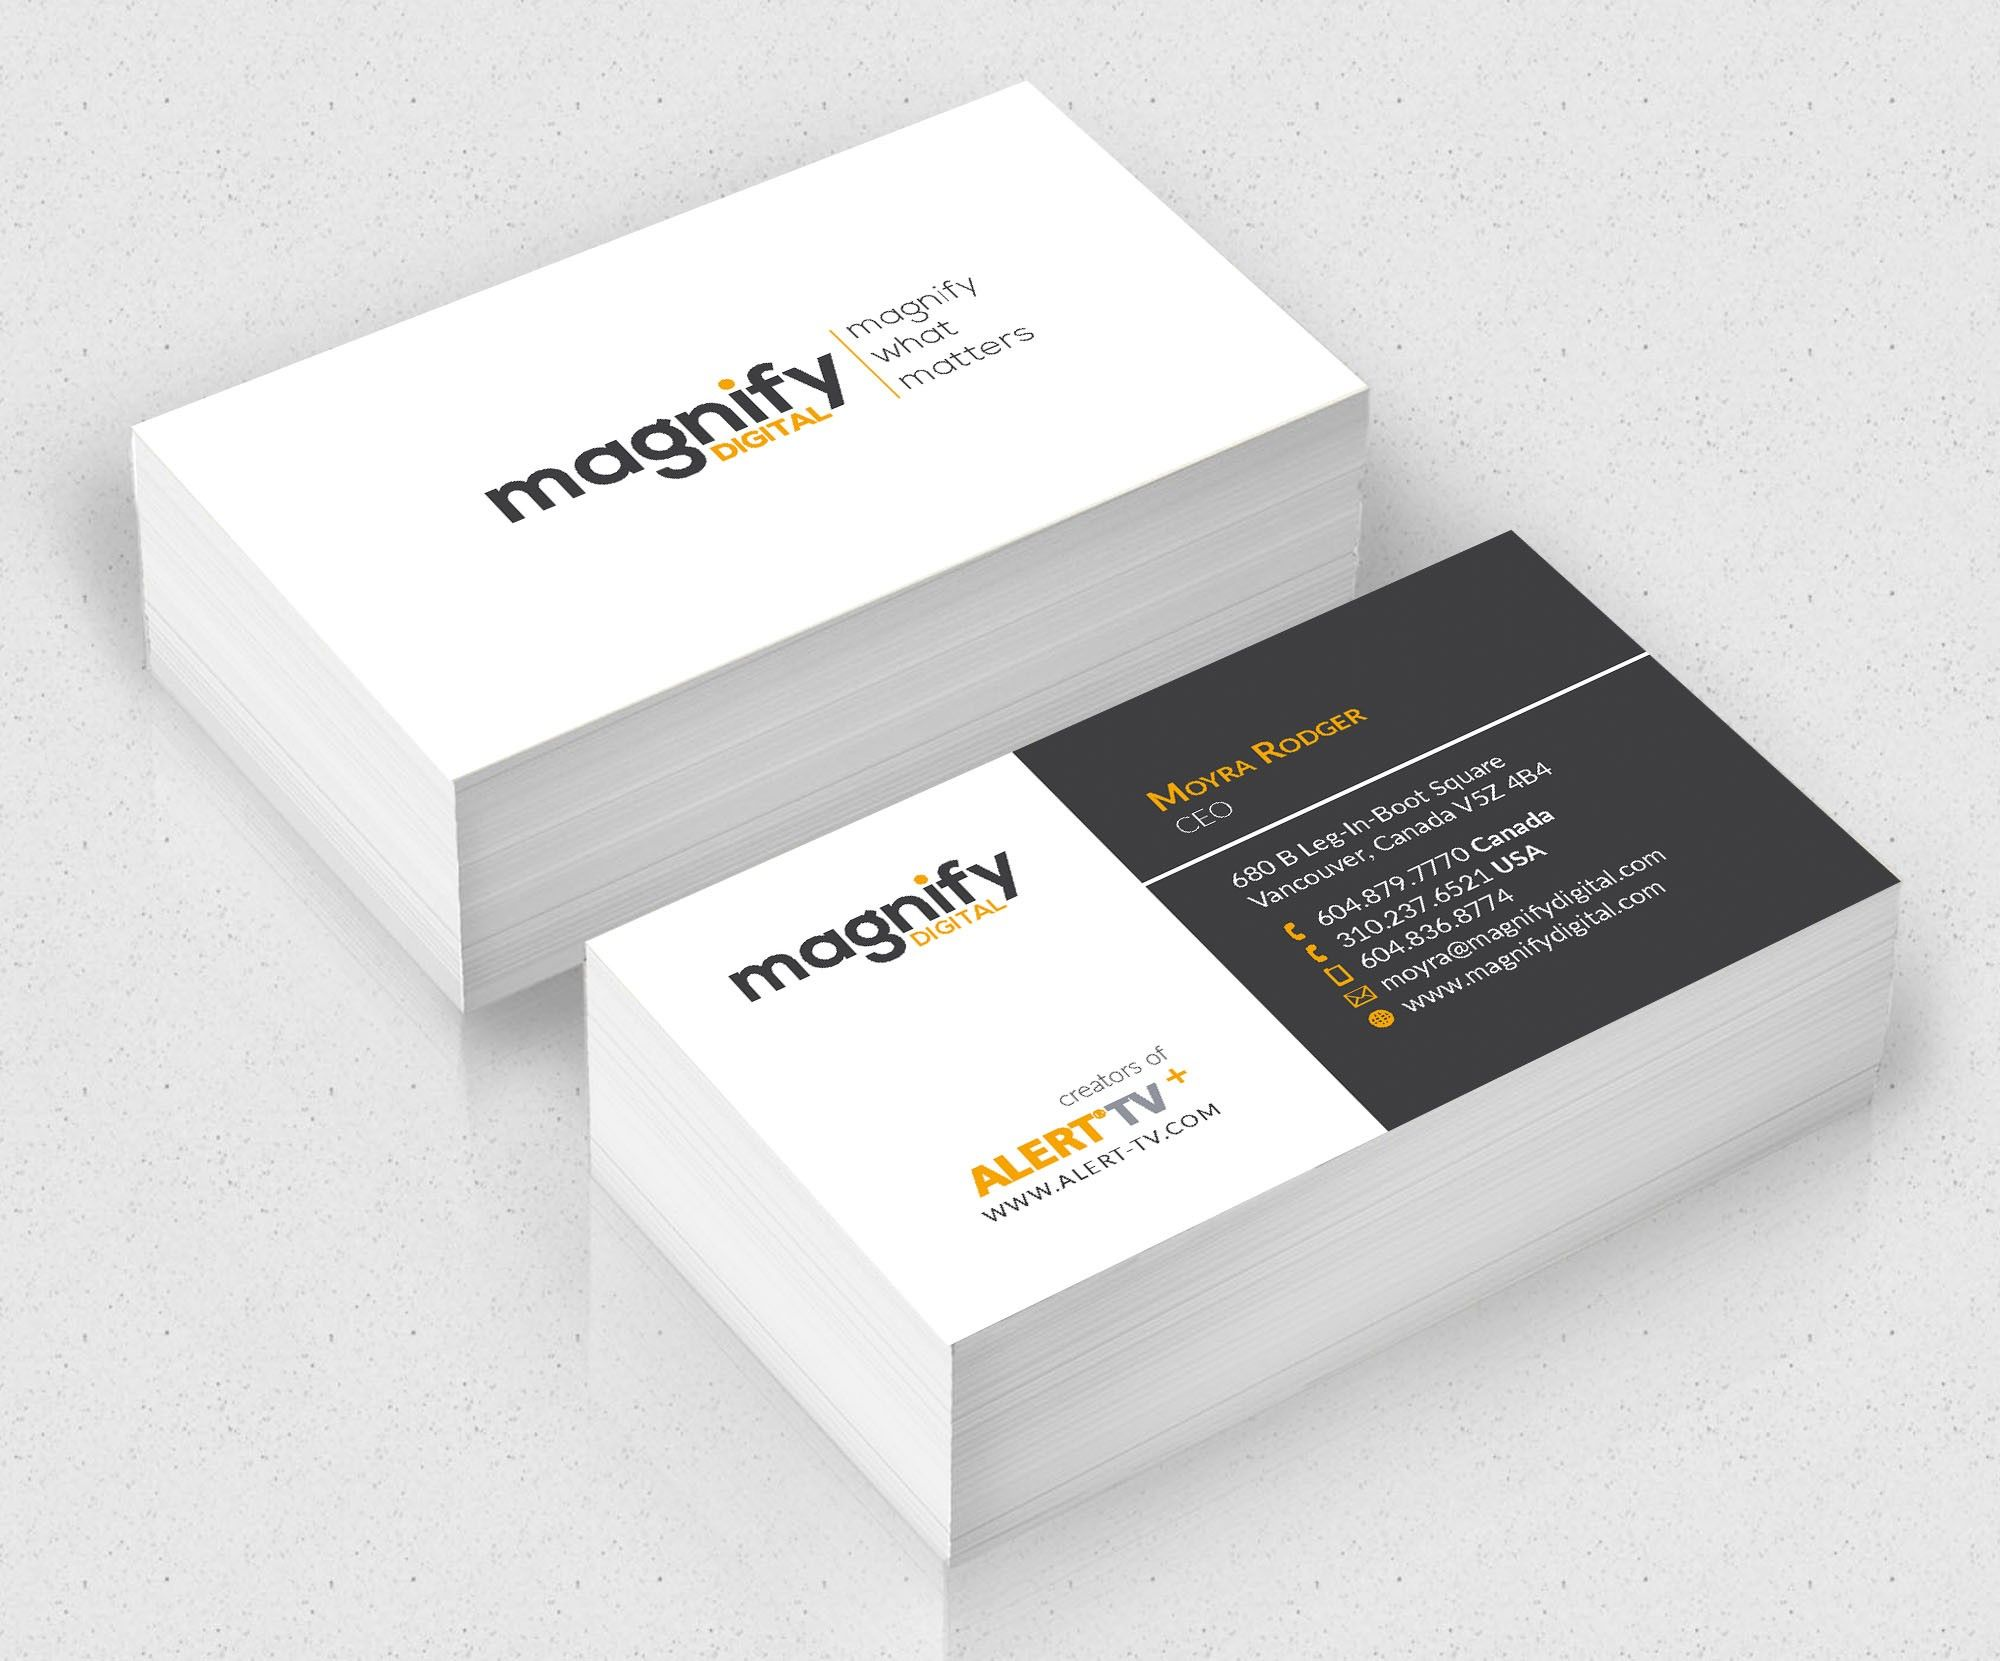 Want a creative and memorable business card to make a great first